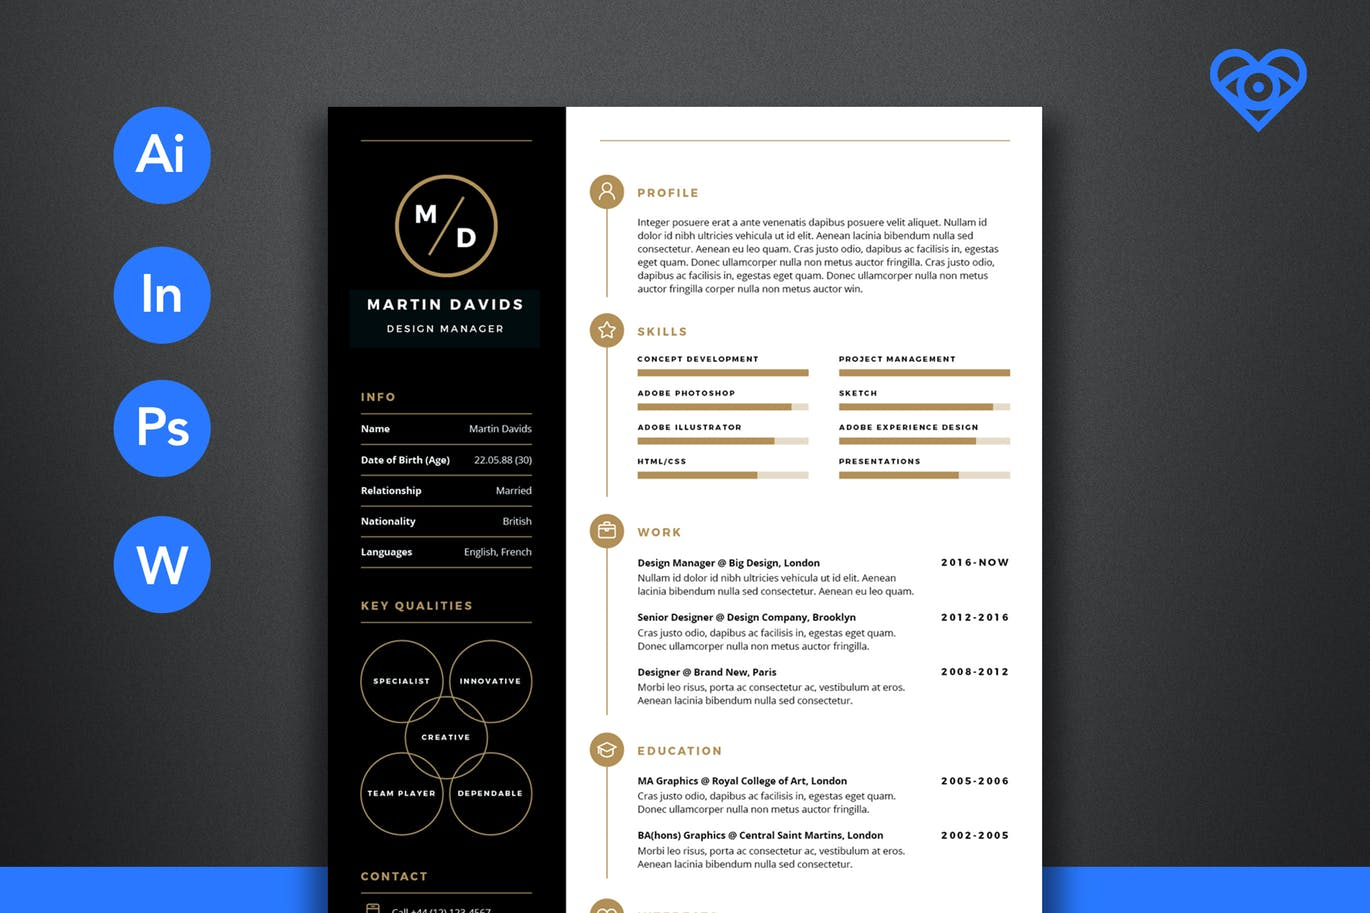 50 best cv resume templates of 2018 design shack this professional resume comes with a modern design that quickly attracts anyones attention it also comes in a4 size and in 3 pages for the resume thecheapjerseys Image collections